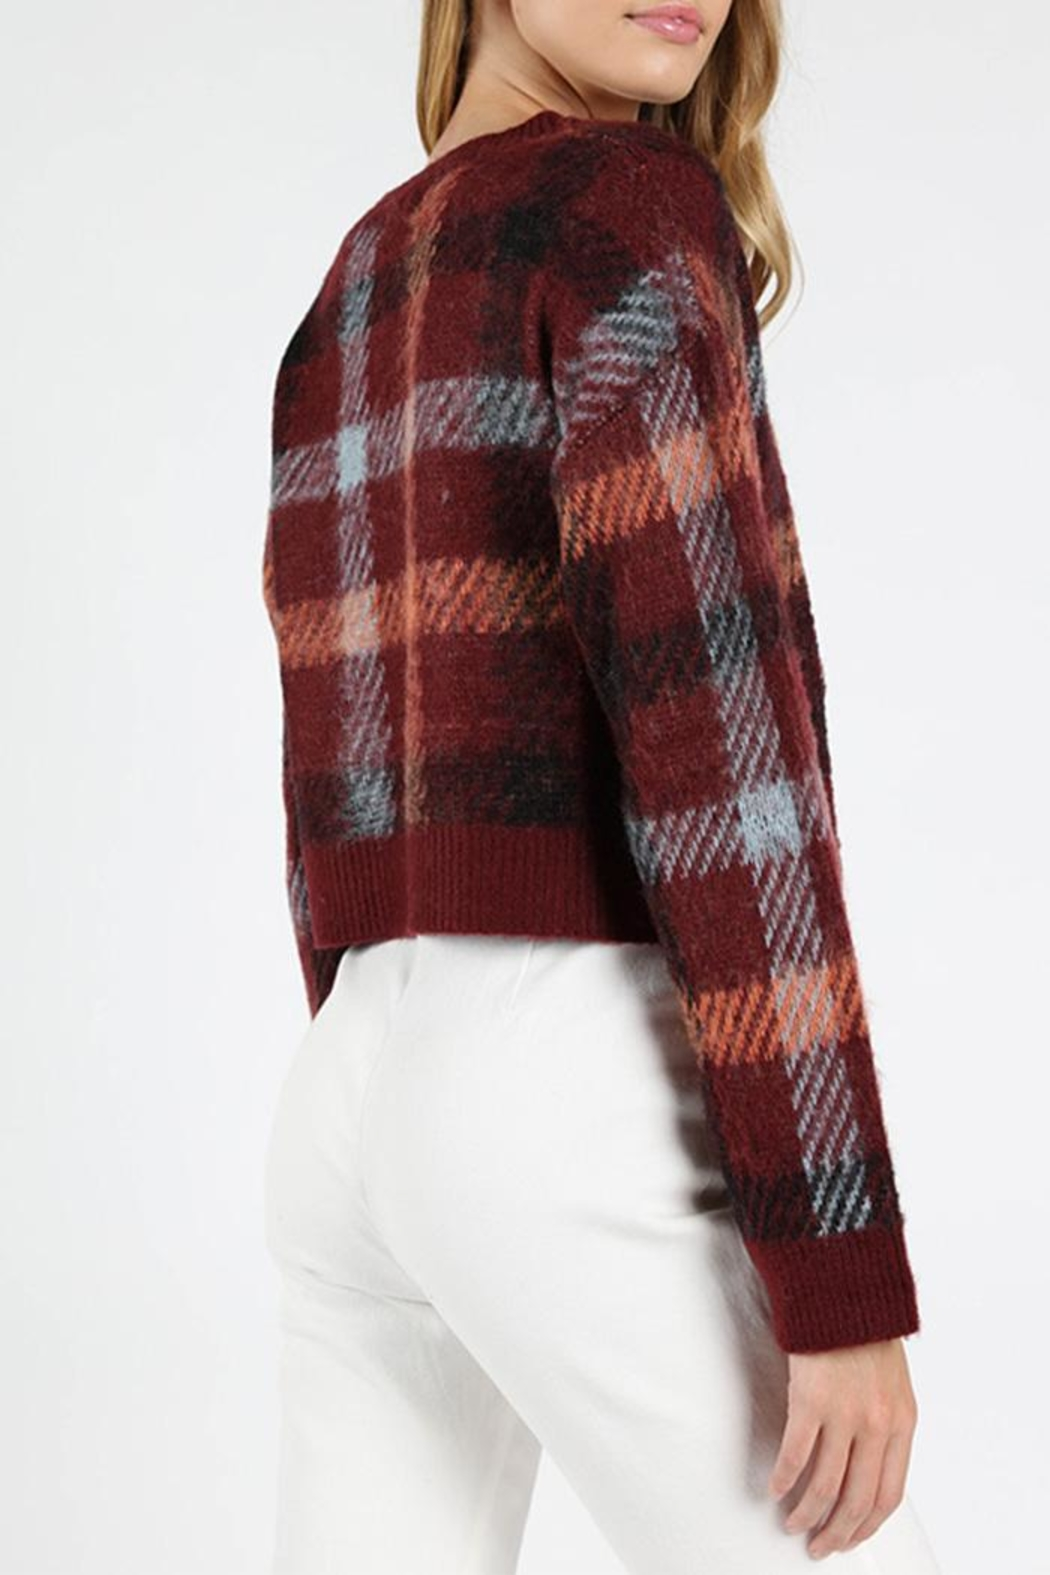 Honey Punch Burgundy Plaid Sweater - Front Full Image